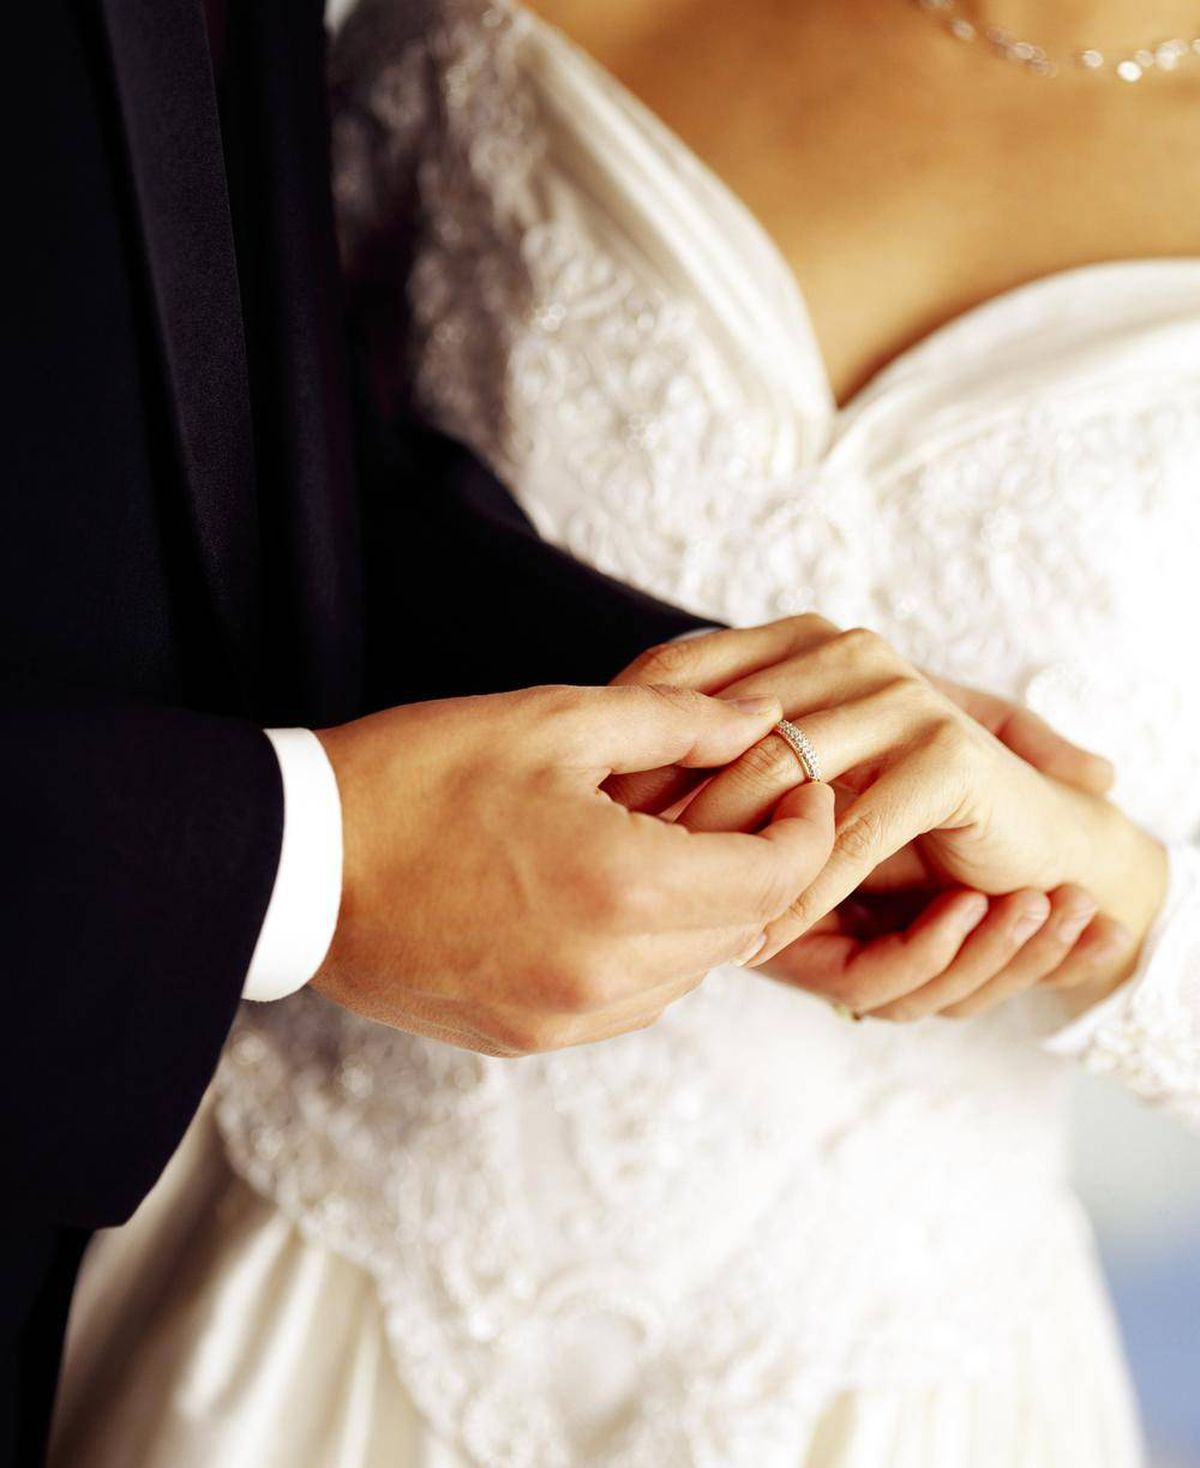 Wedding day cold feet divorce may be in the cards the globe and thinkstock junglespirit Images